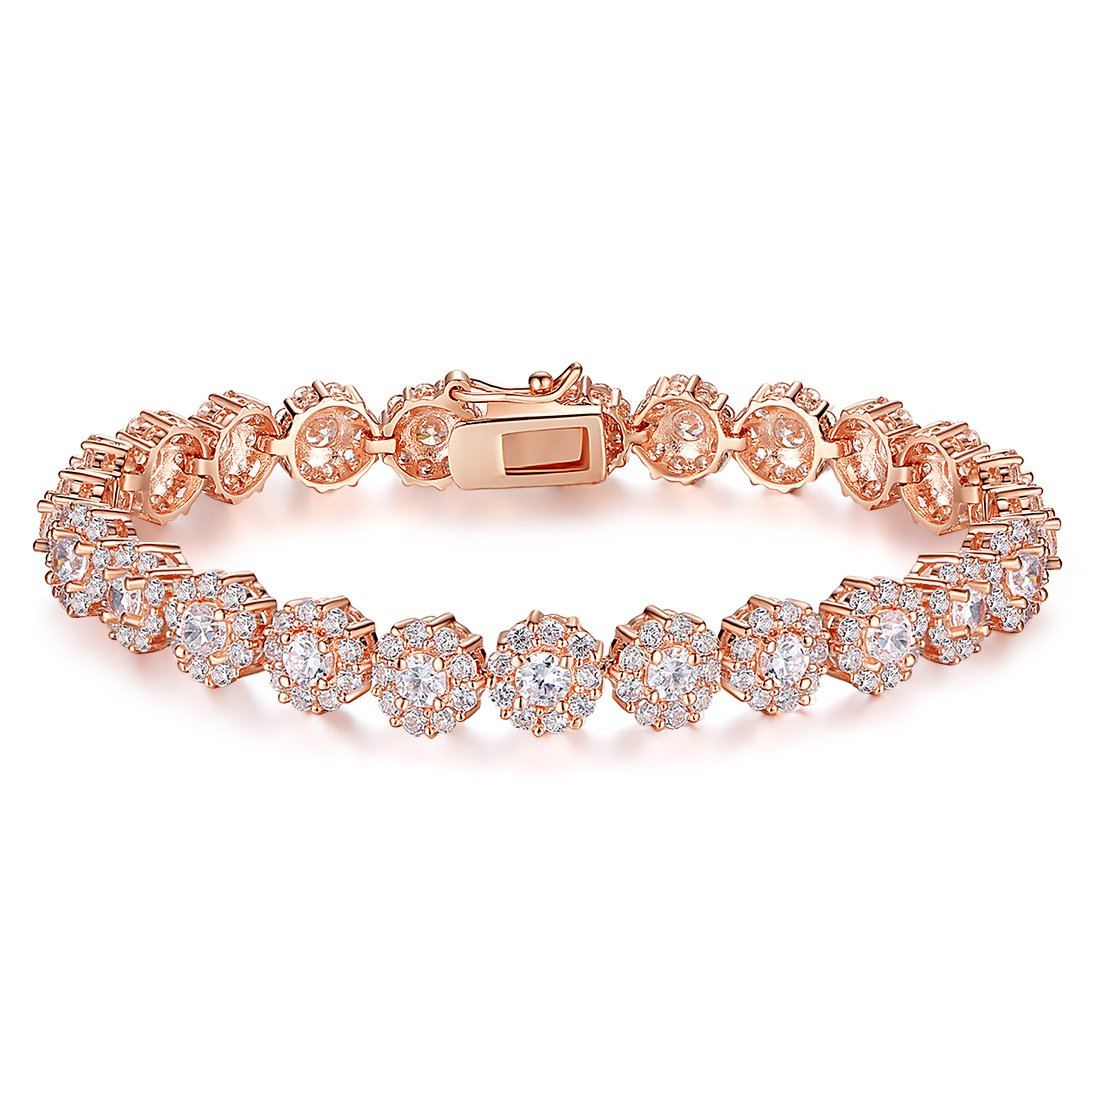 BAMOER Classic Rose Gold Plated Bracelet Sparkling White Cubic Zirconia Stones Women Girls Her 6.7 inches